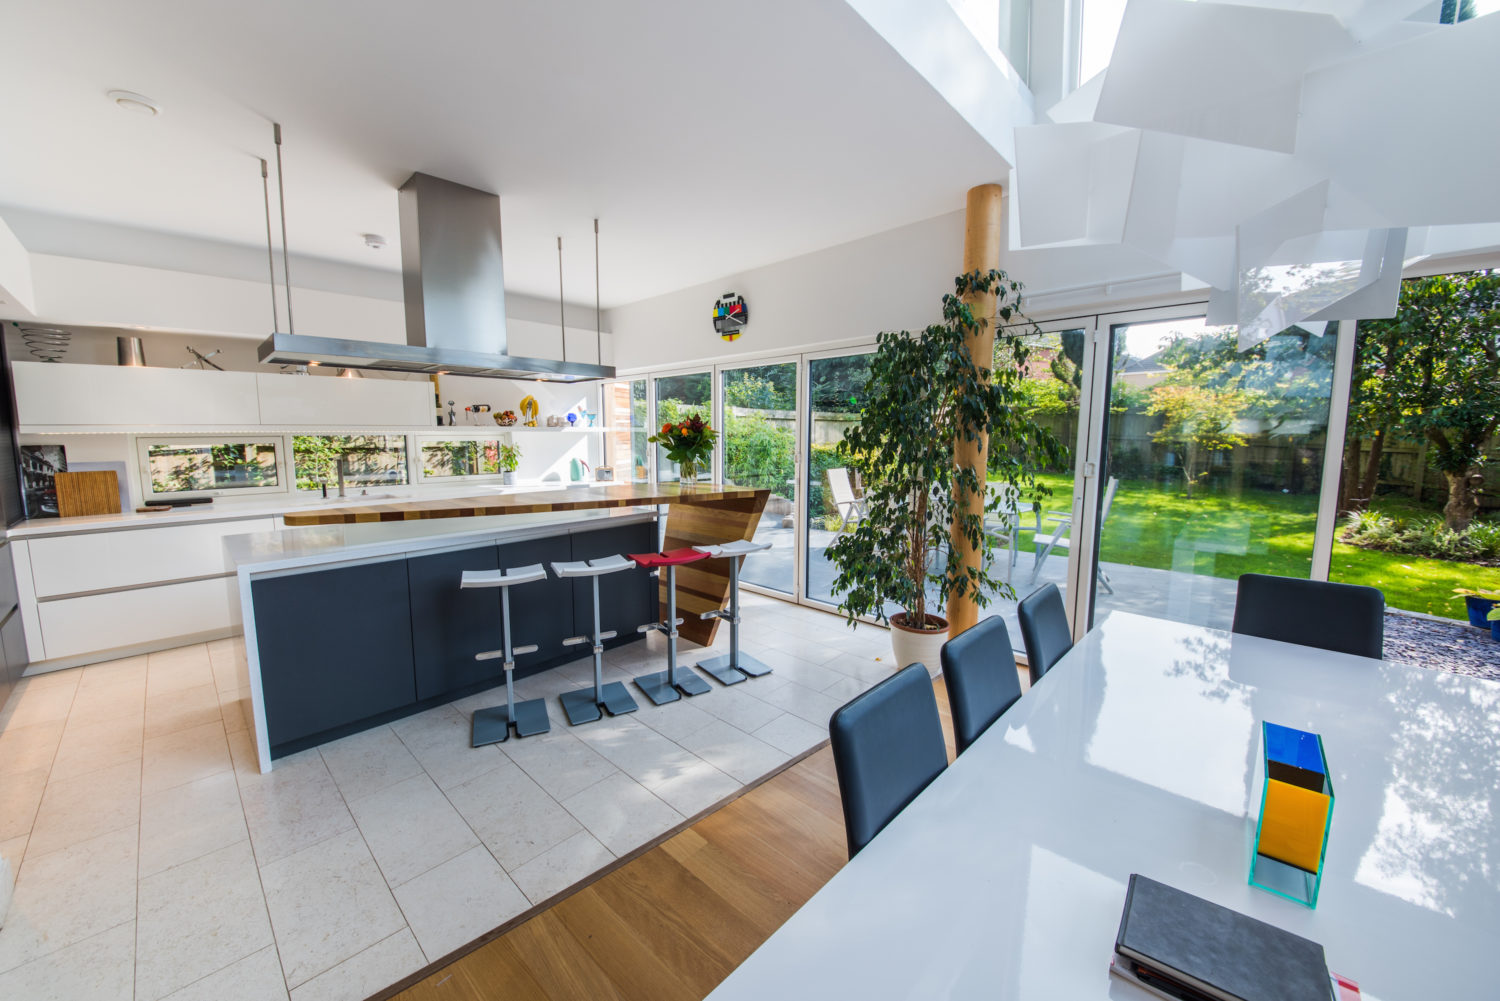 Cardiff home with beautiful kitchen, mixture of wood, grey and white